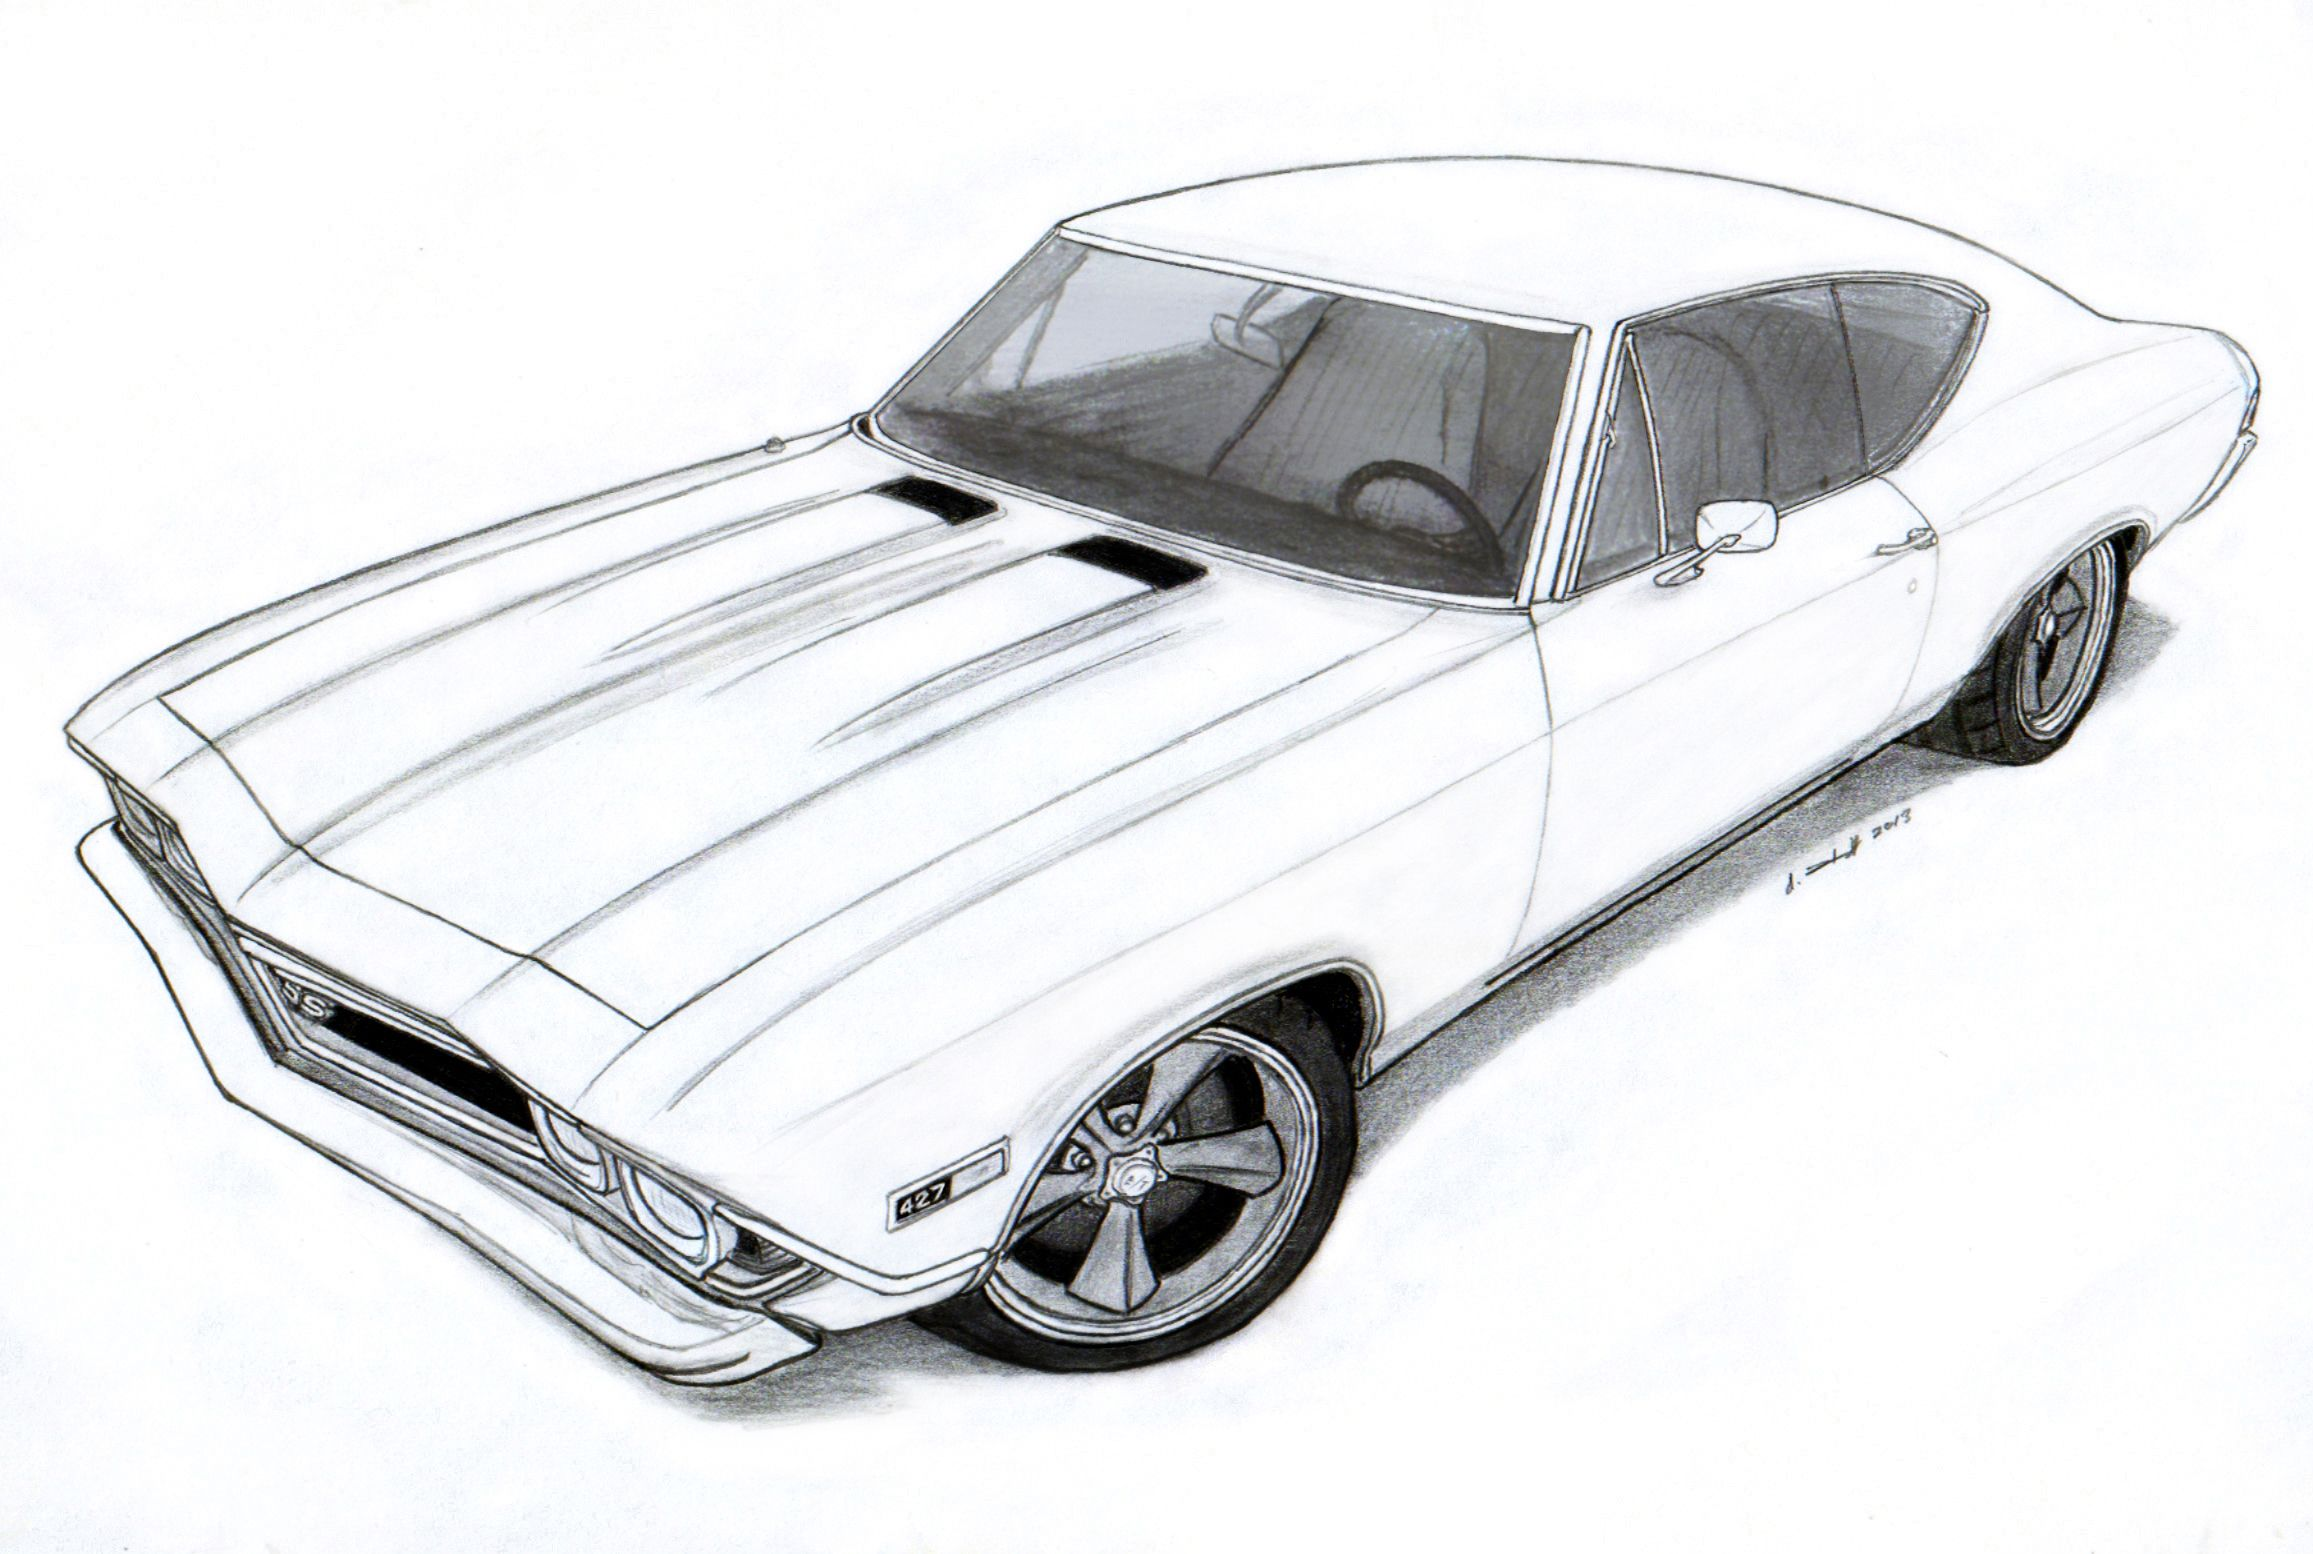 Ss chevelle 1969 clipart